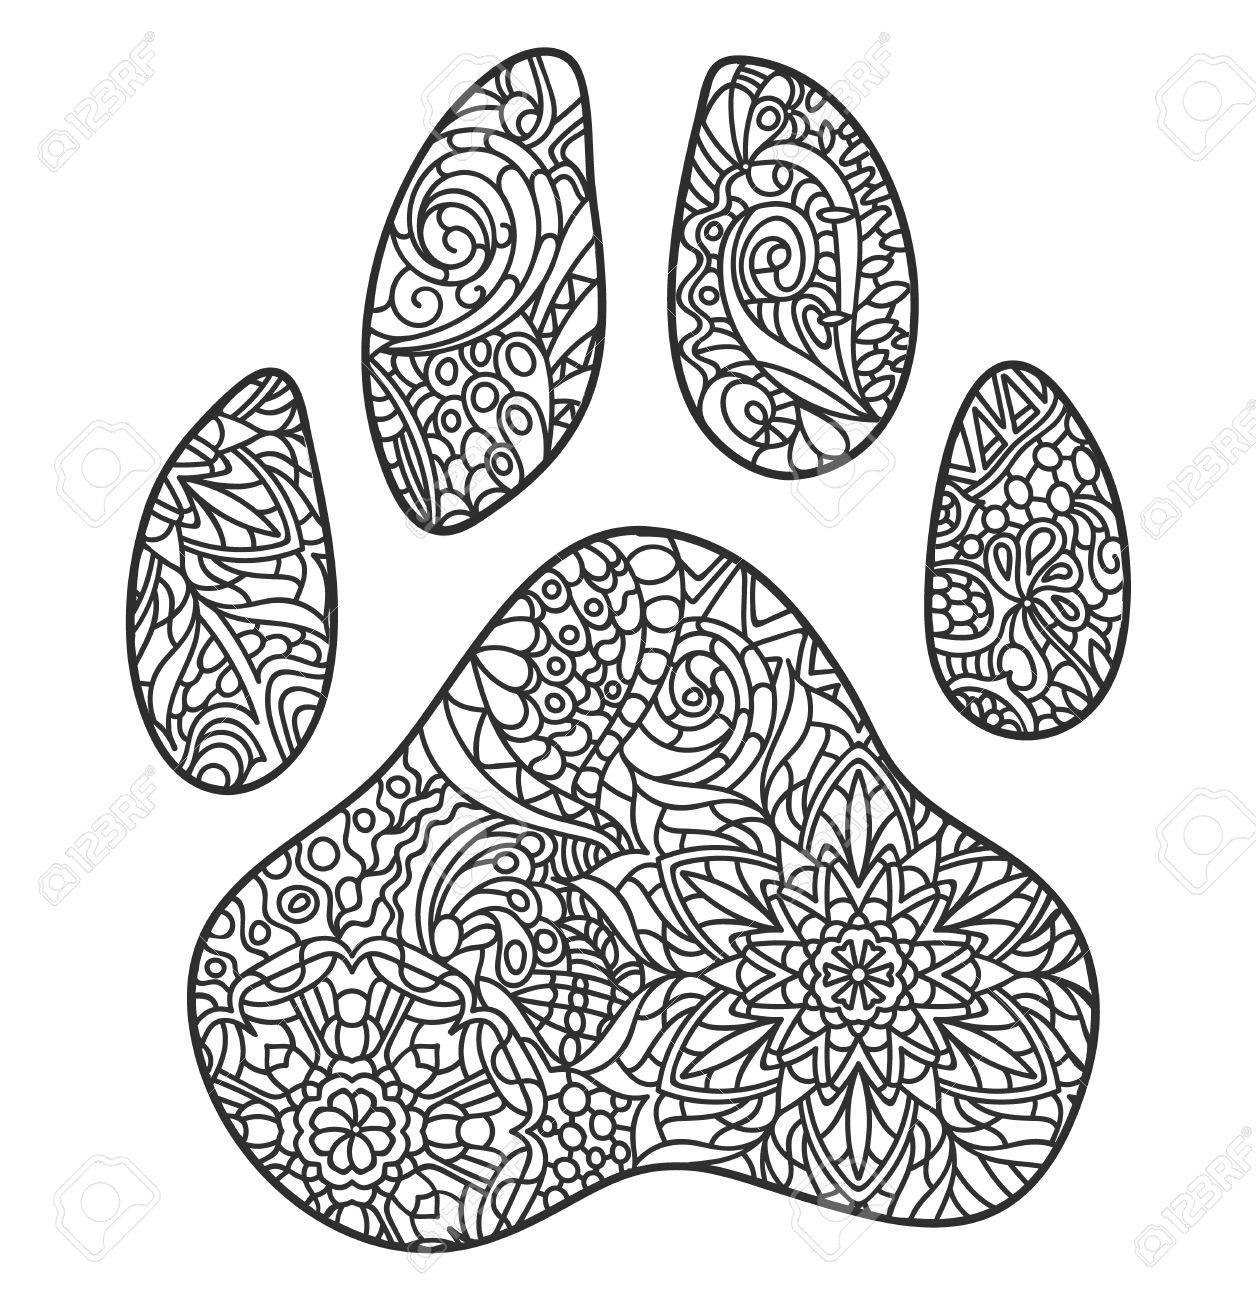 a vector monochrome hand drawn zentagle illustration of dog paw